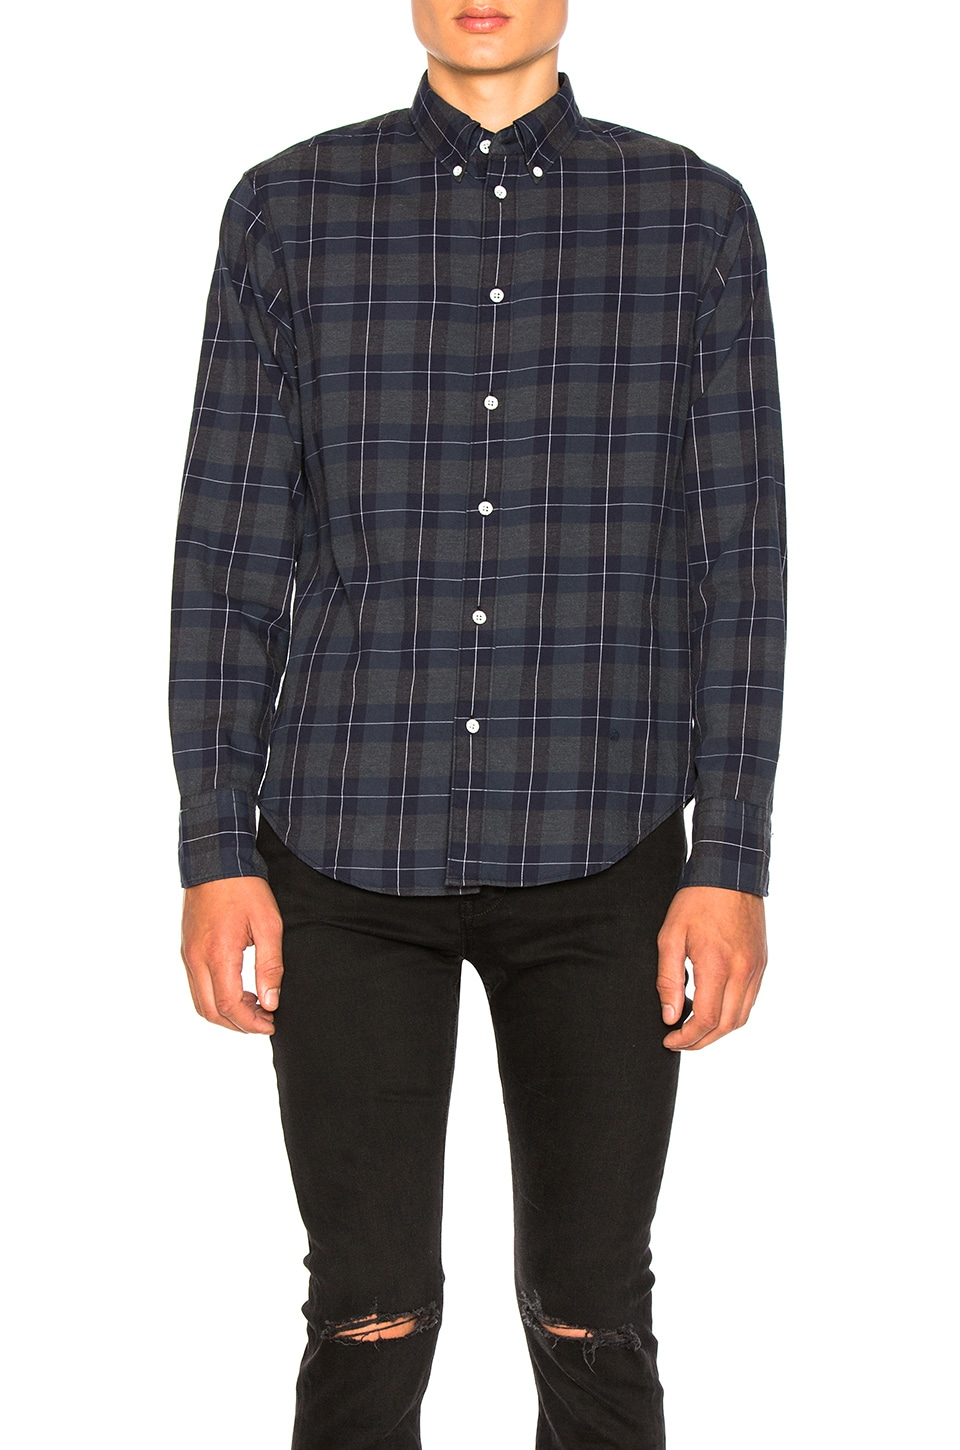 Tomlin Shirt by Rag & Bone